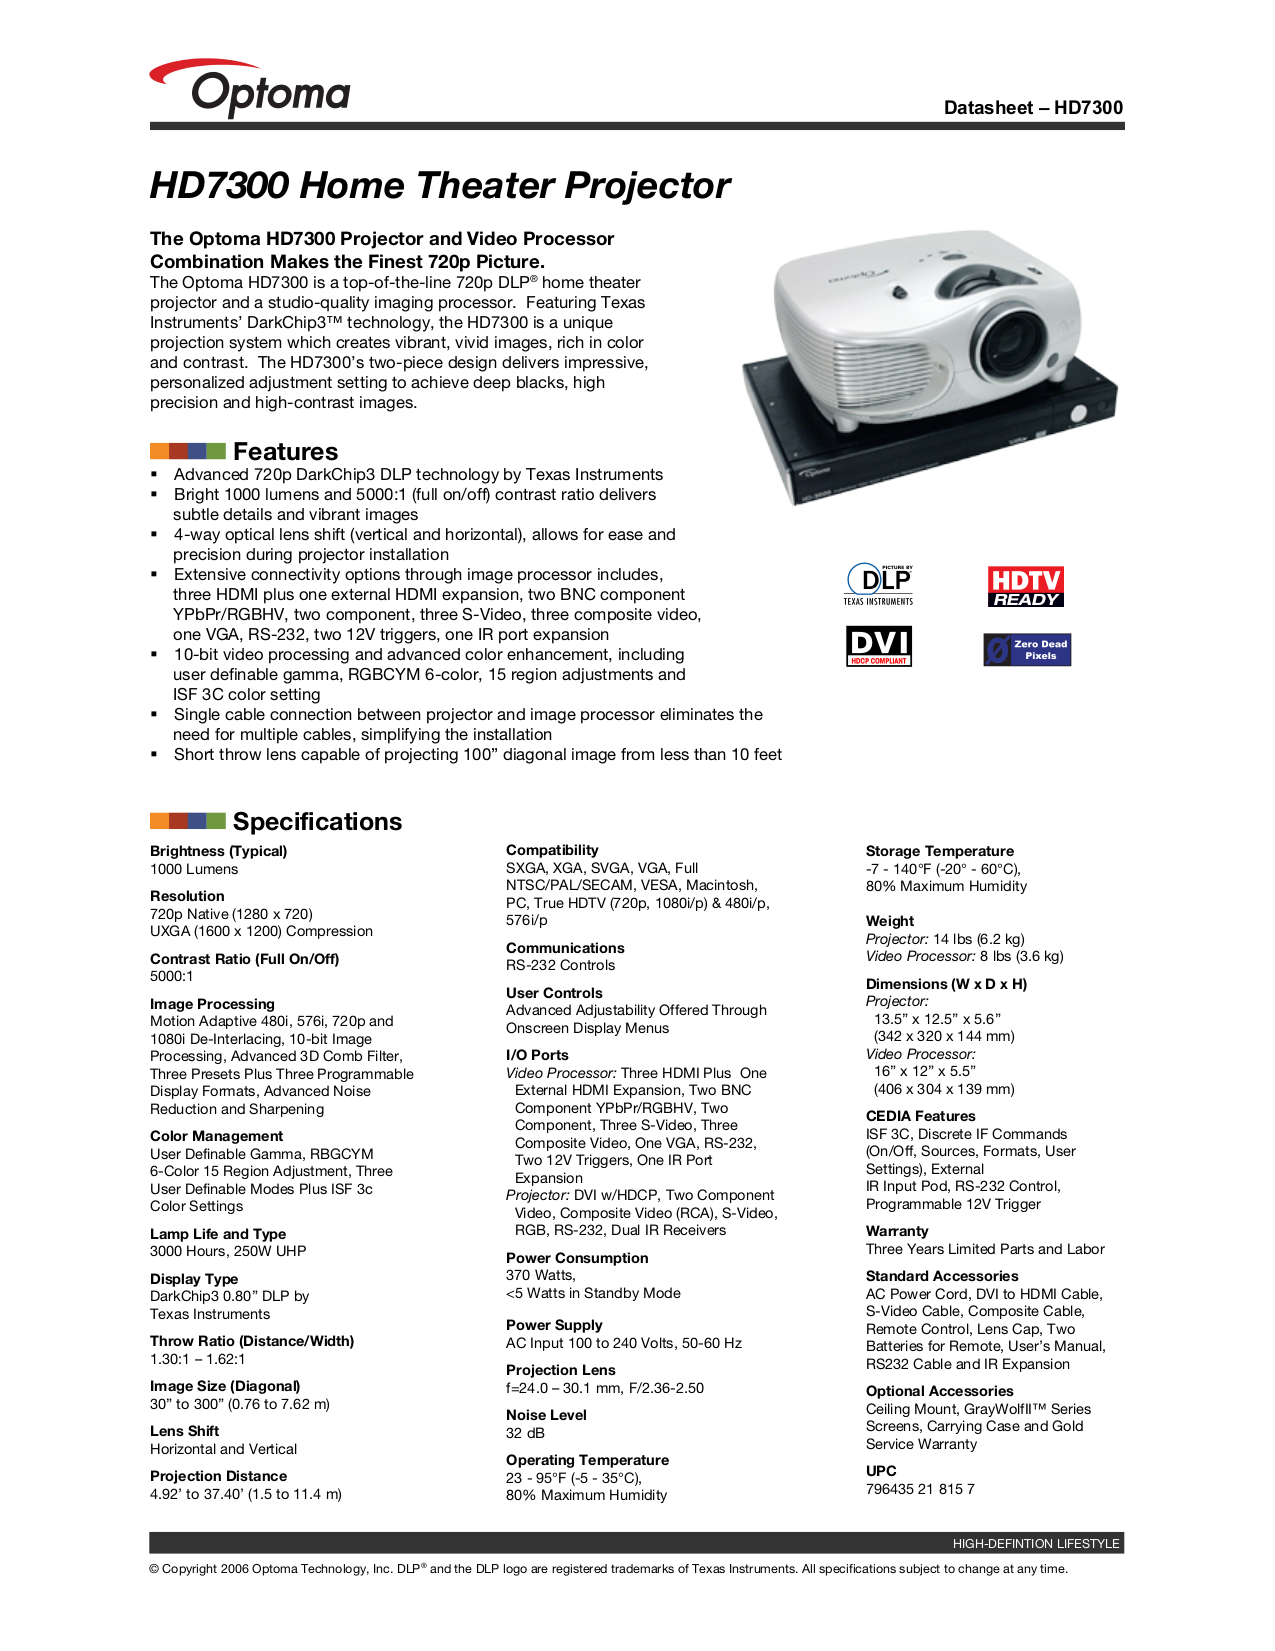 pdf for Optoma Projector HD7300 manual